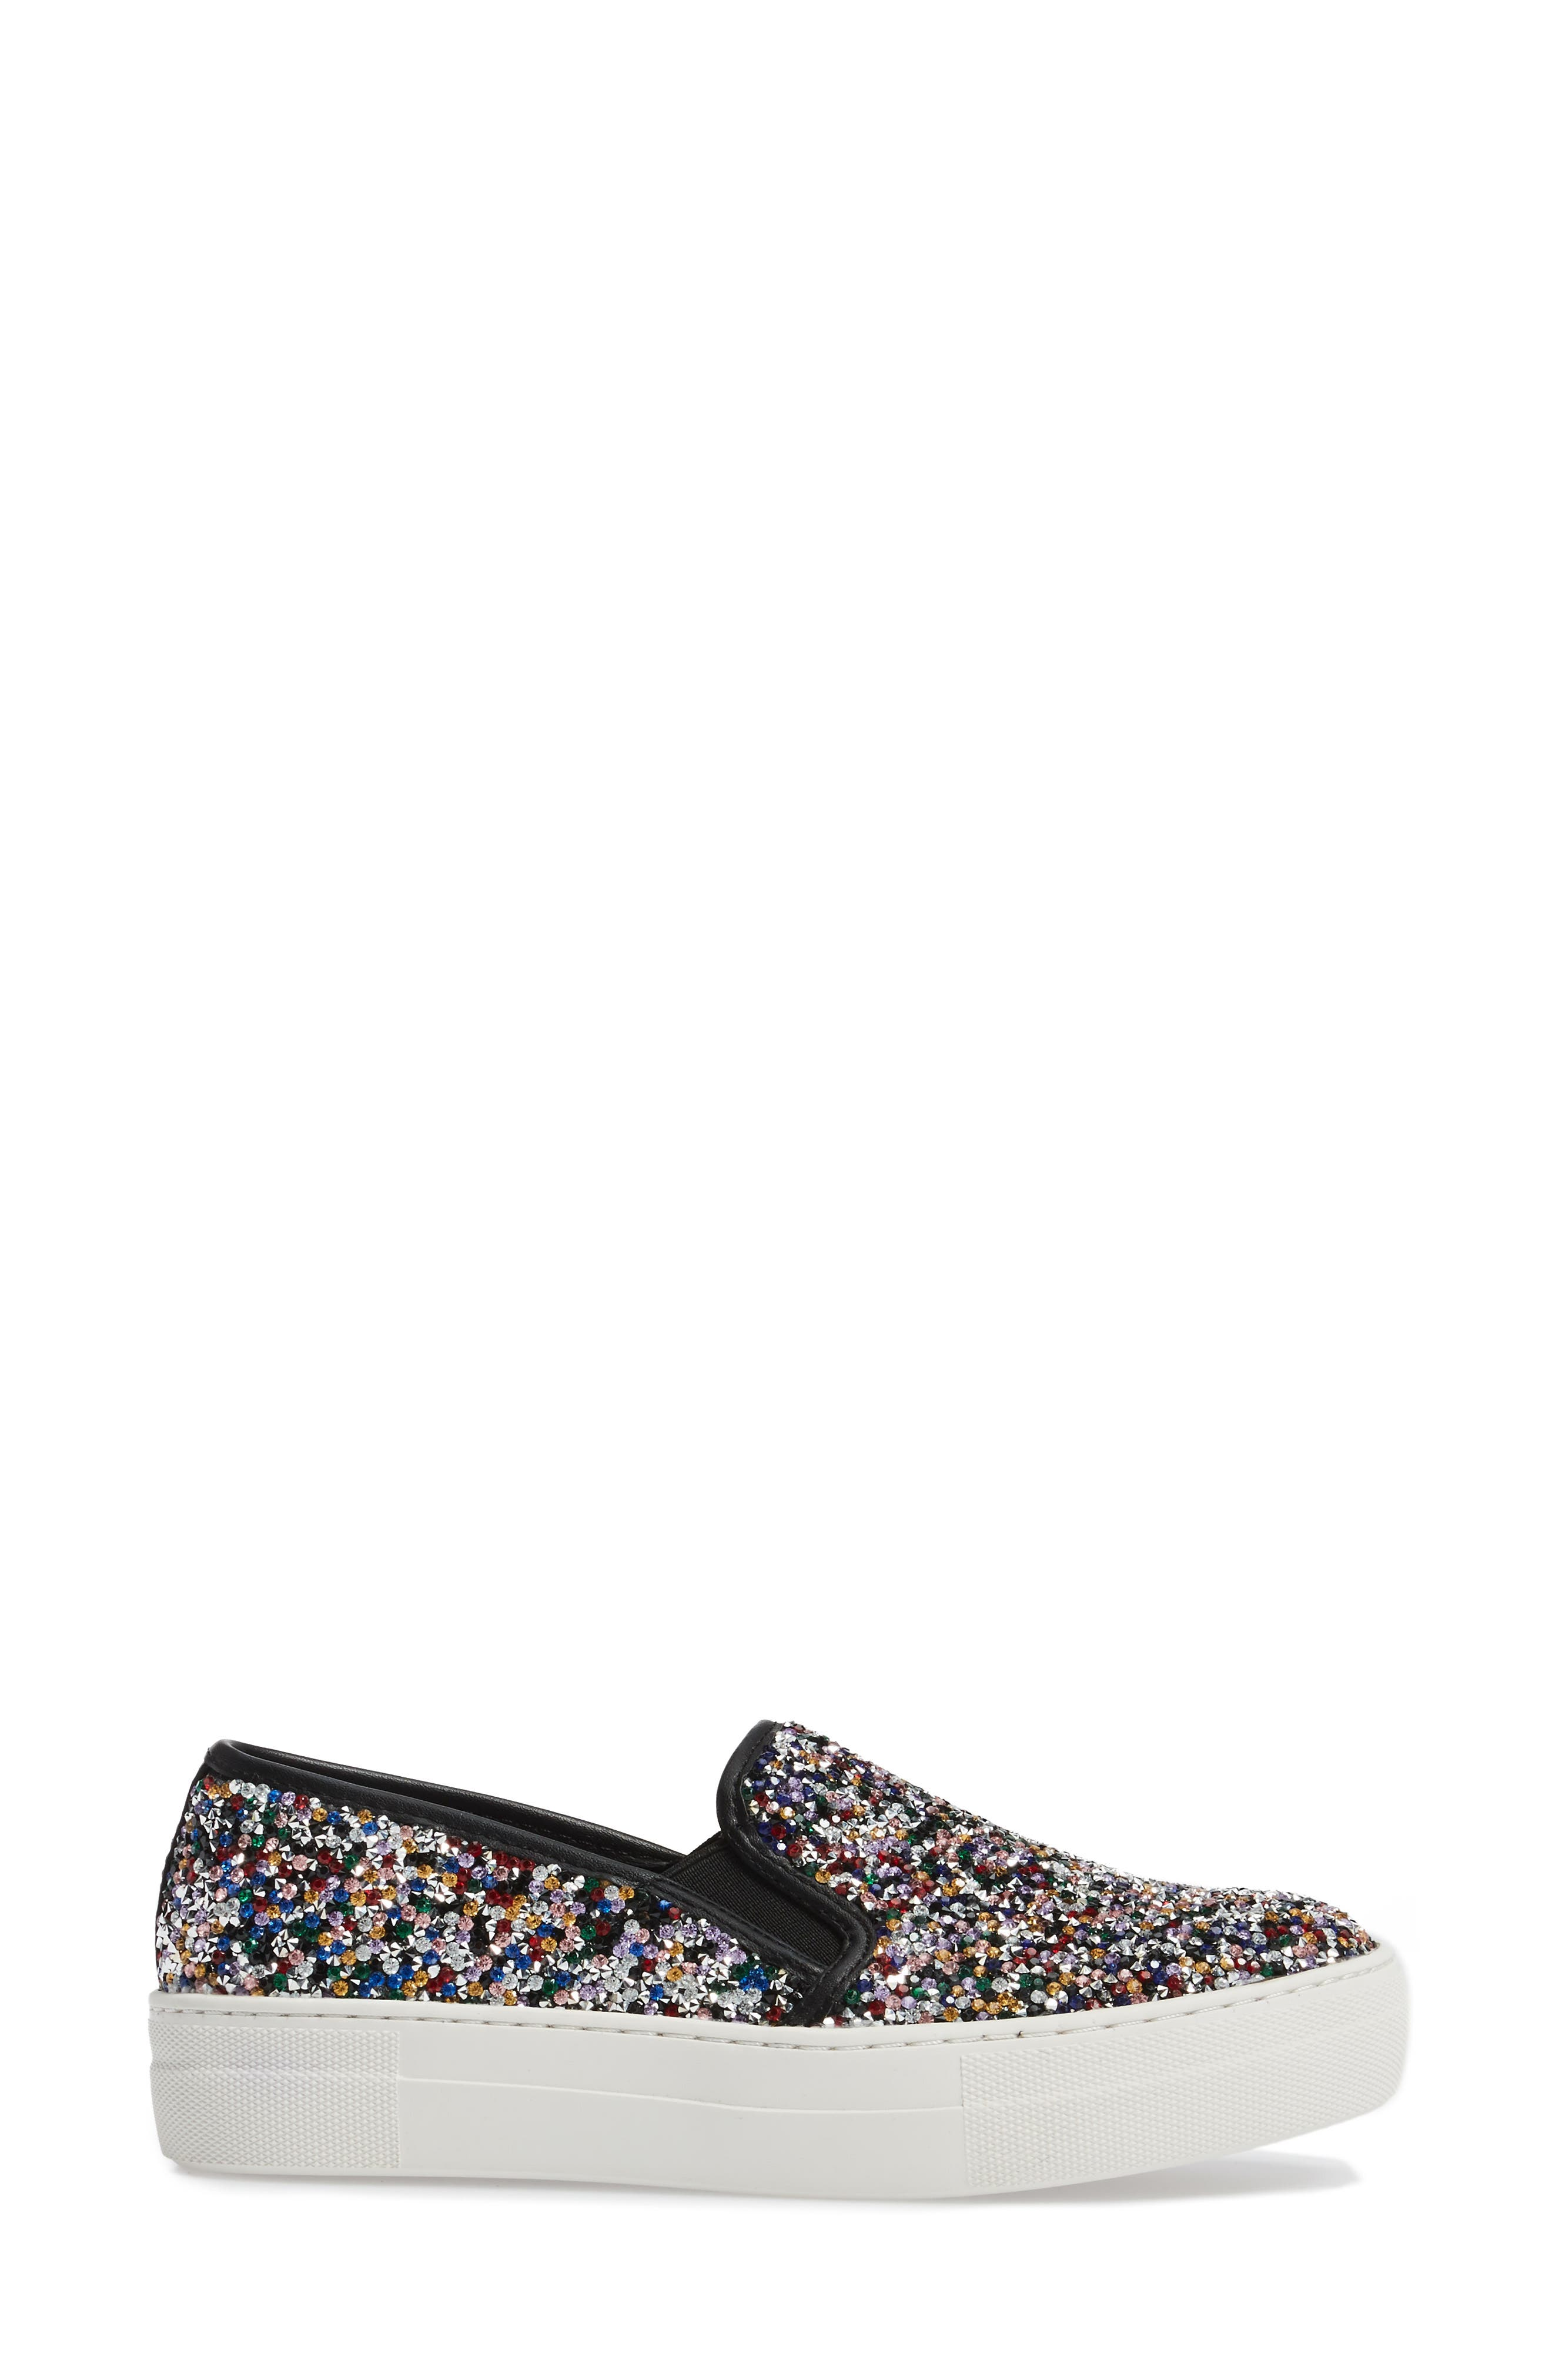 Alternate Image 3  - Steve Madden Gracious Slip-On Sneaker (Women)